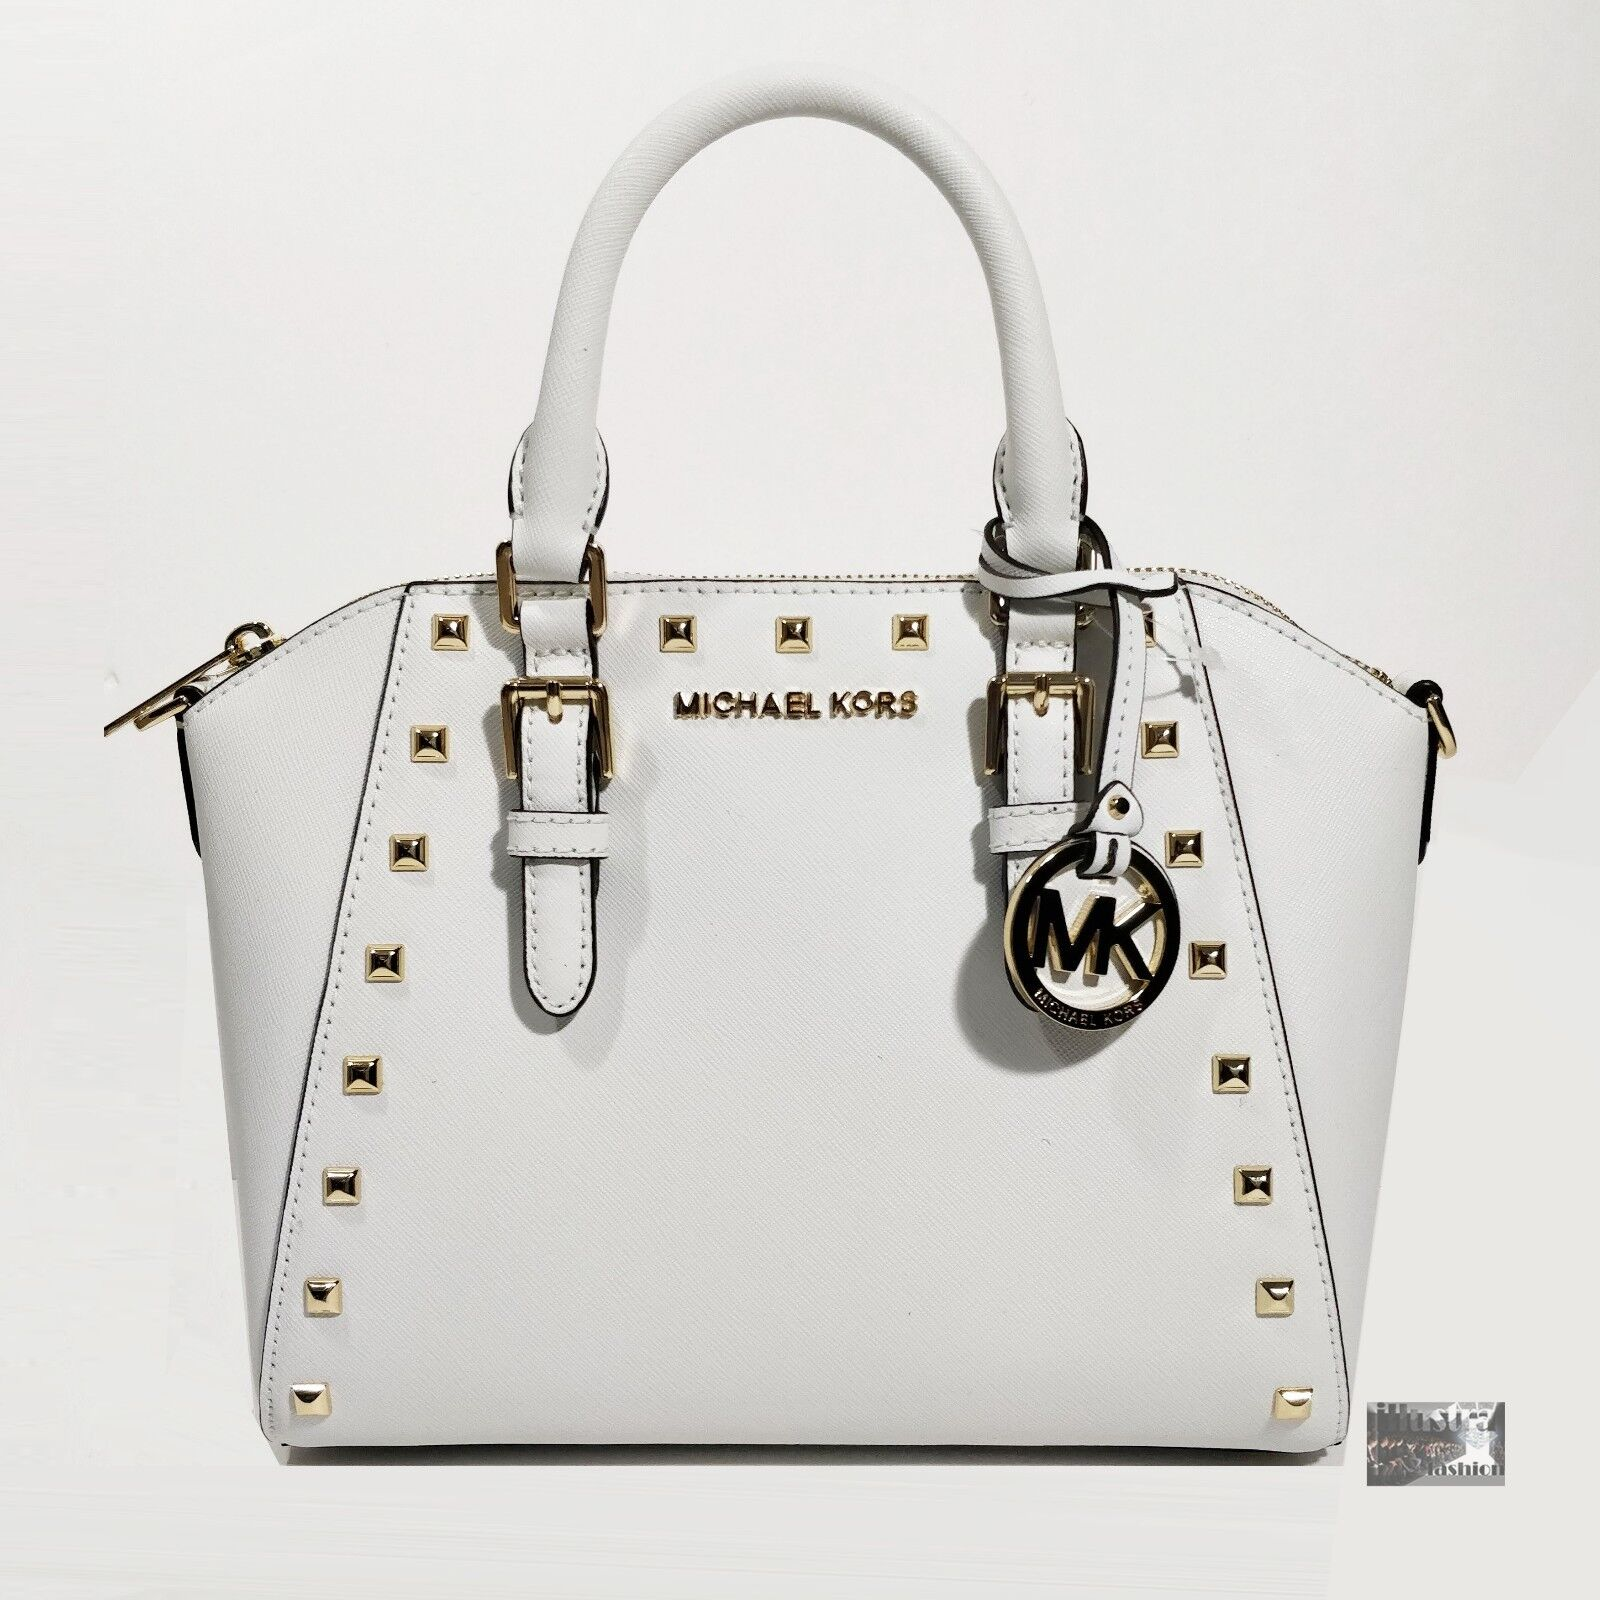 4366beff67a0 Details about NWT  328 Michael Kors Ciara White Saffiano Leather Studded  Satchel Crossbody Bag